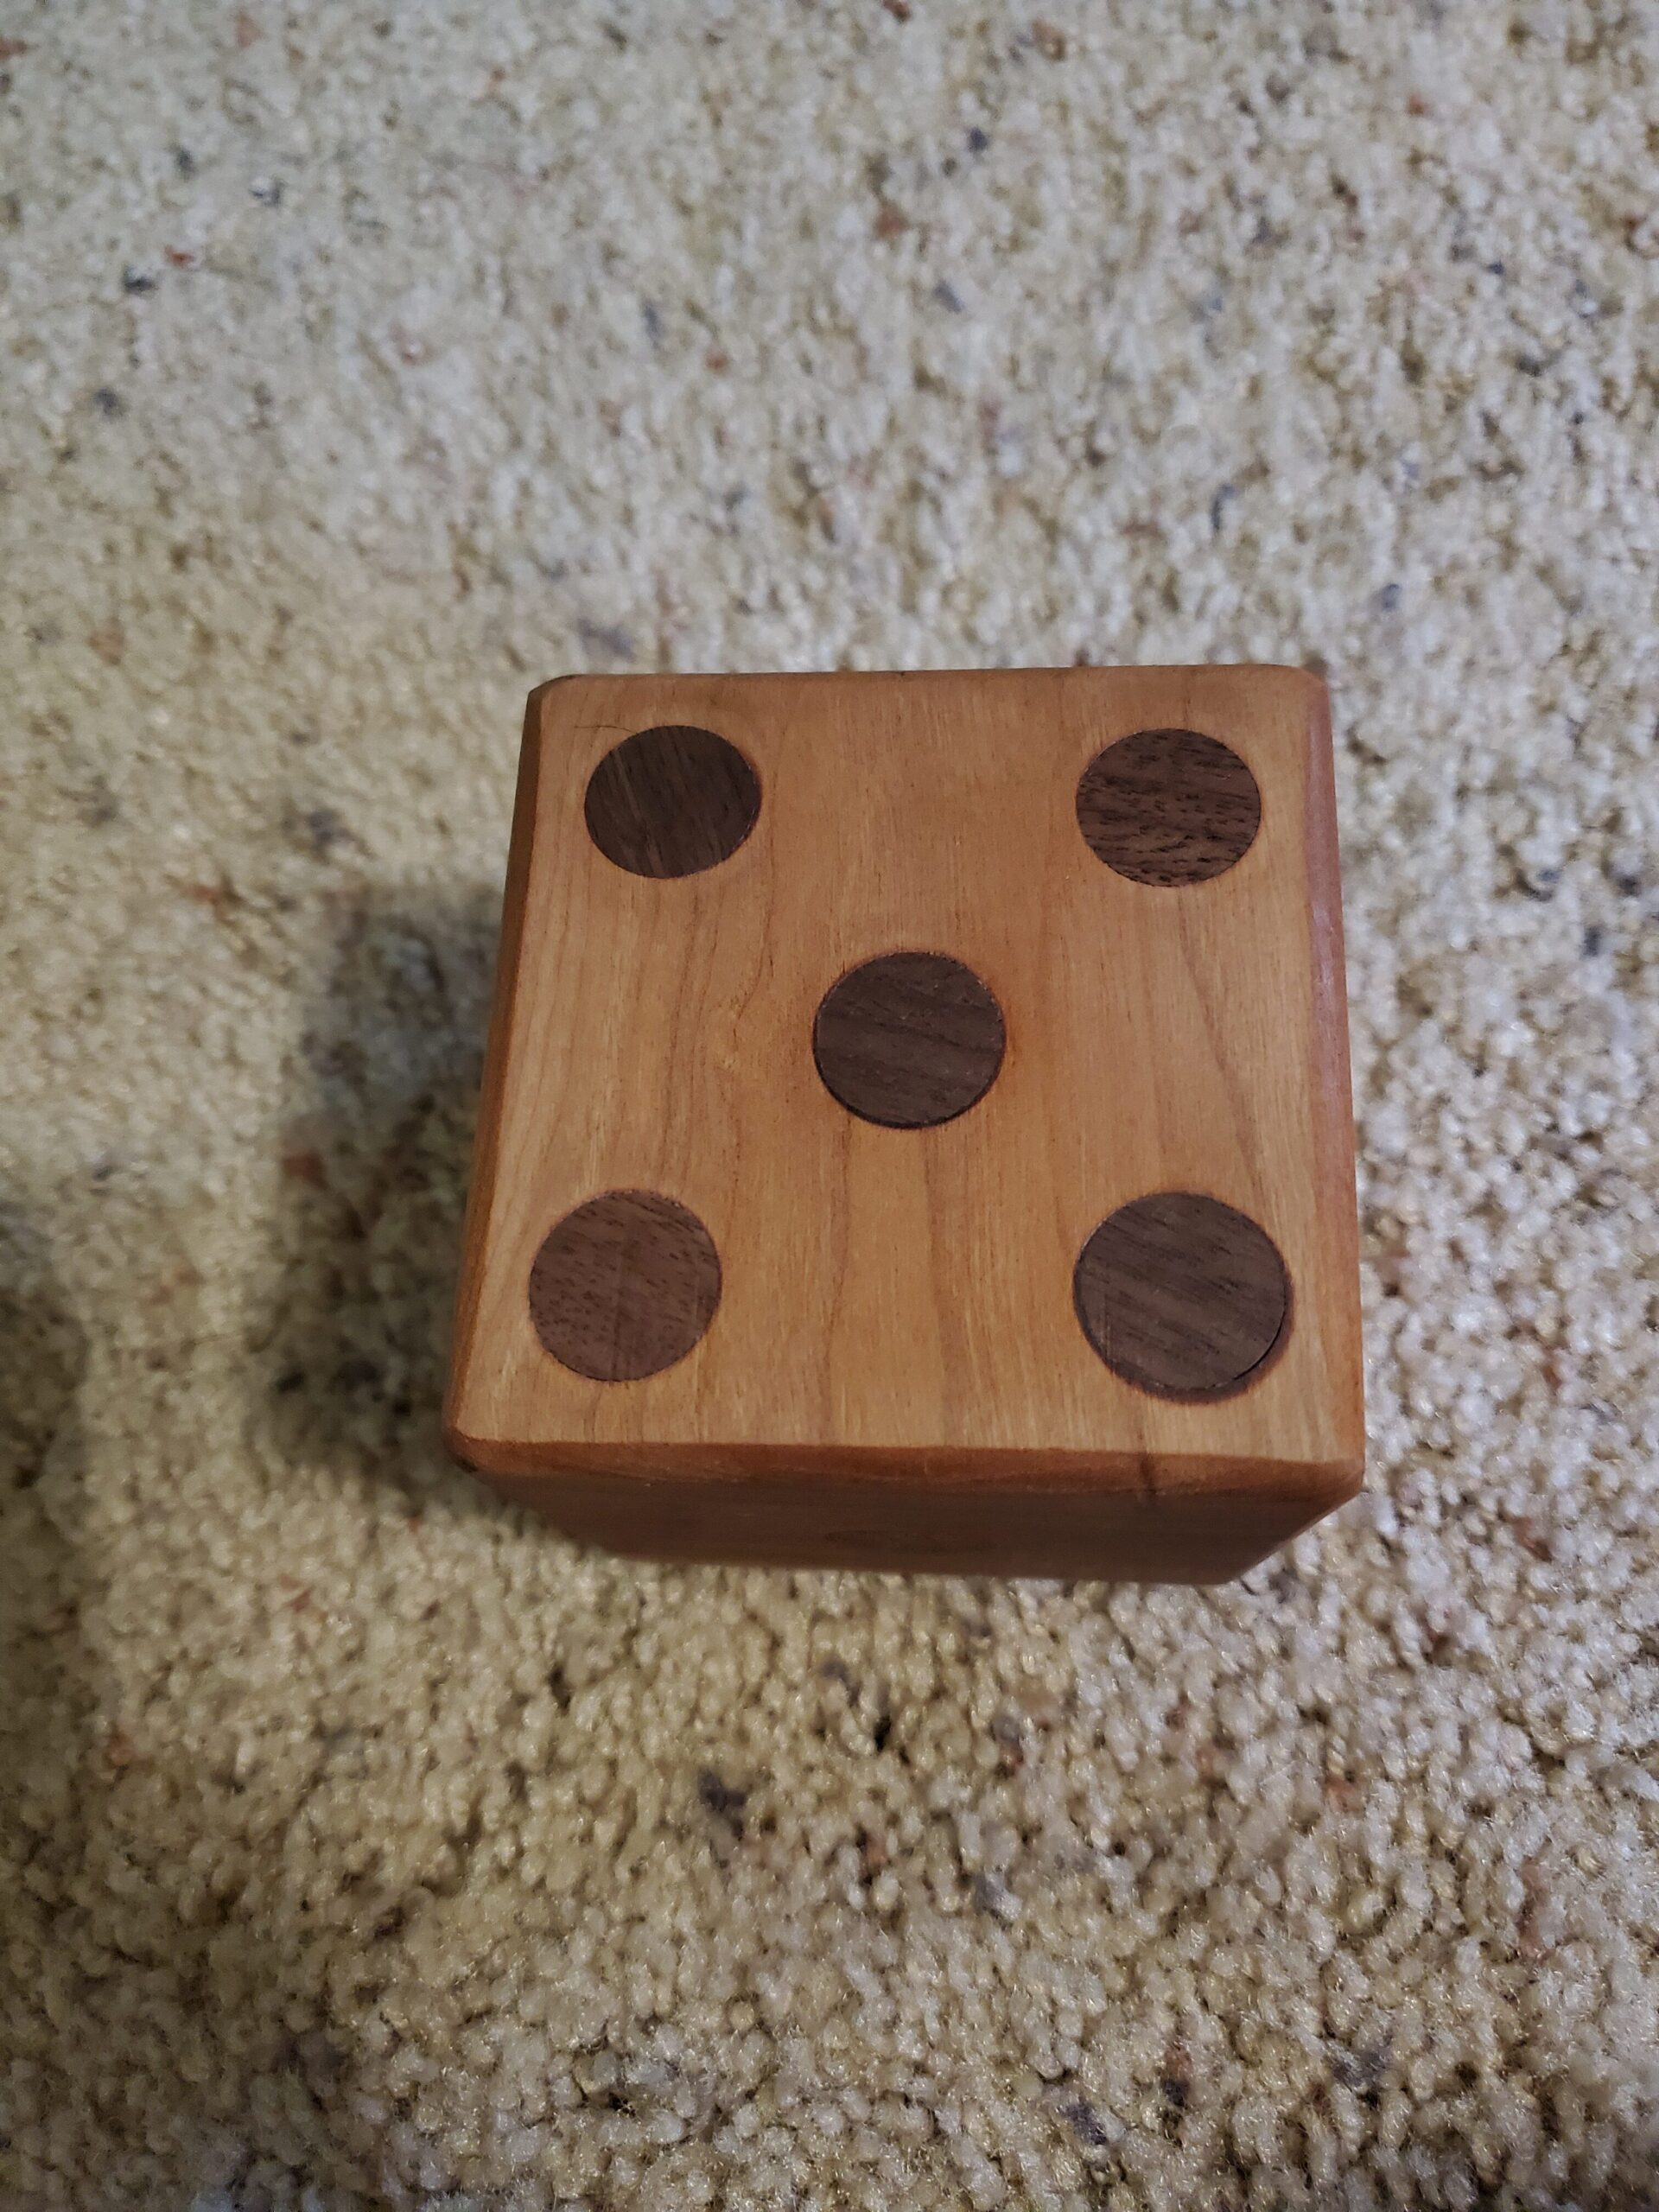 Cherry and Walnut dice